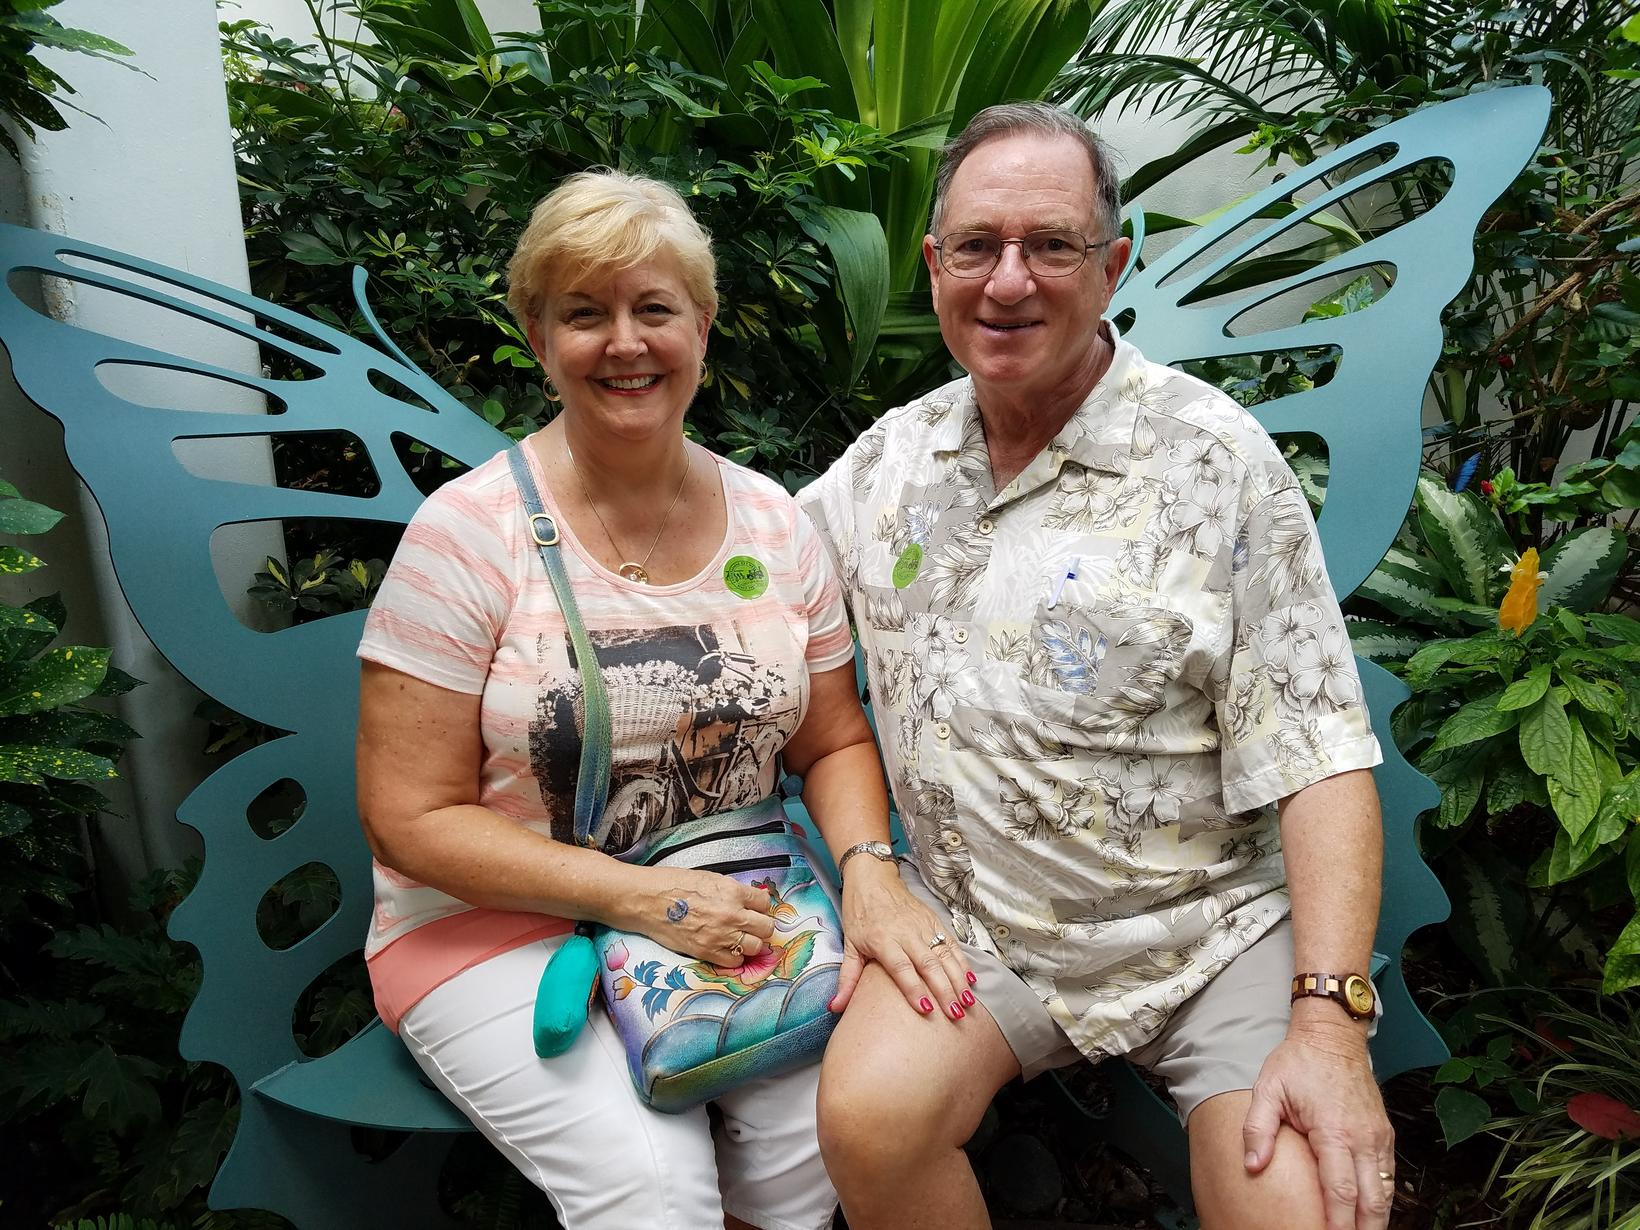 Linda & Robert from Kīhei, Hawaii, United States